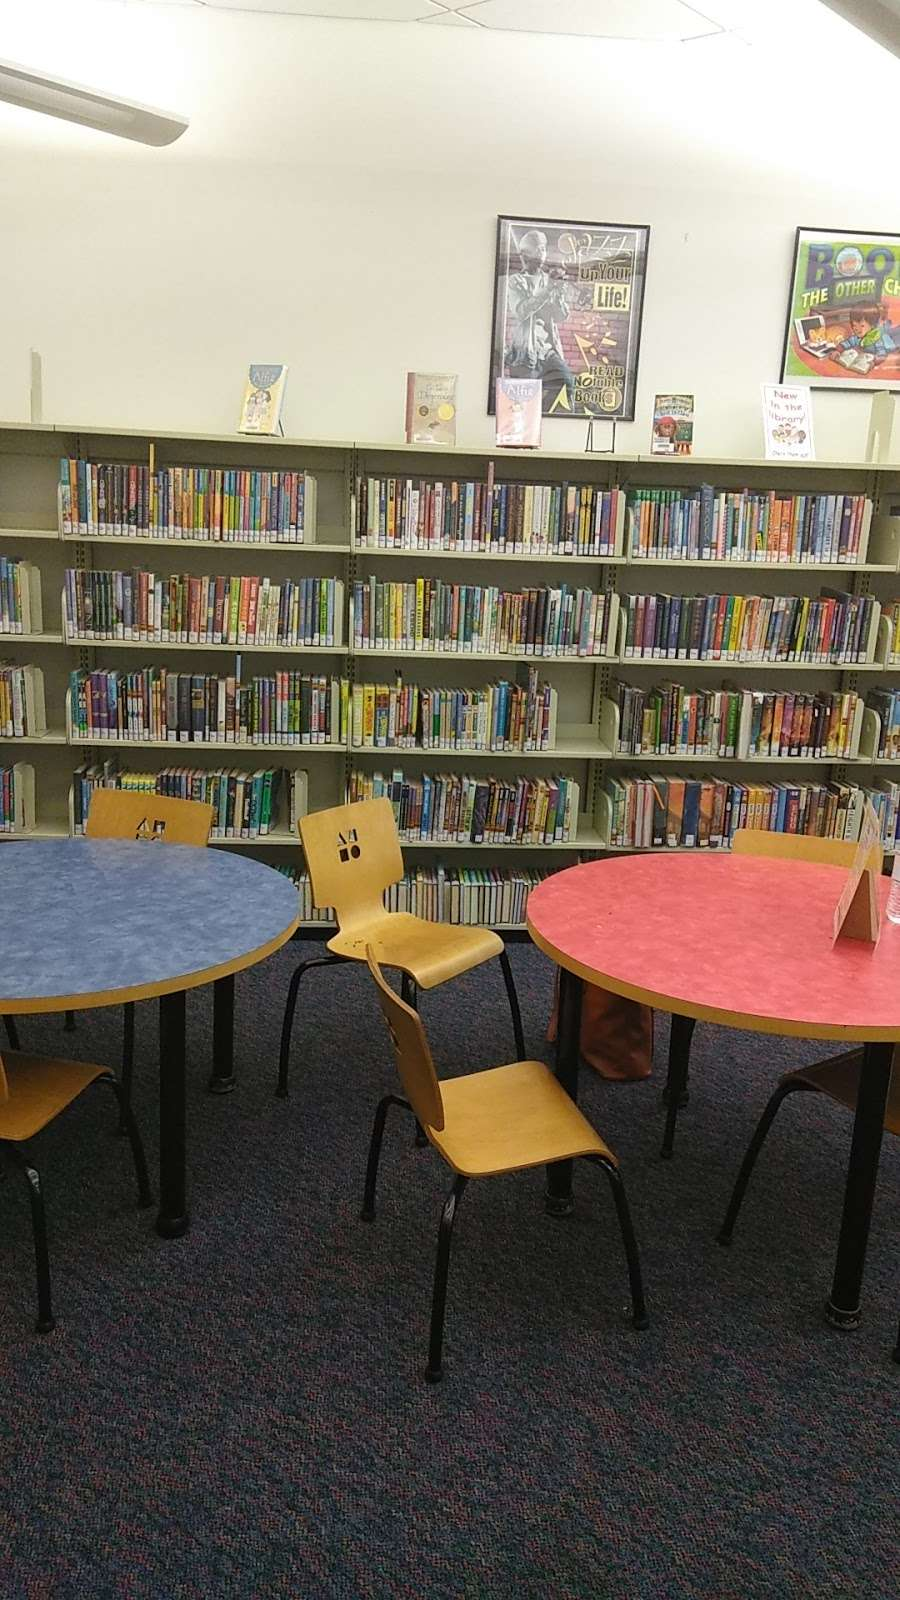 Carver Ranches Library - library  | Photo 4 of 10 | Address: 4735 SW 18th St, West Park, FL 33023, USA | Phone: (954) 357-6245